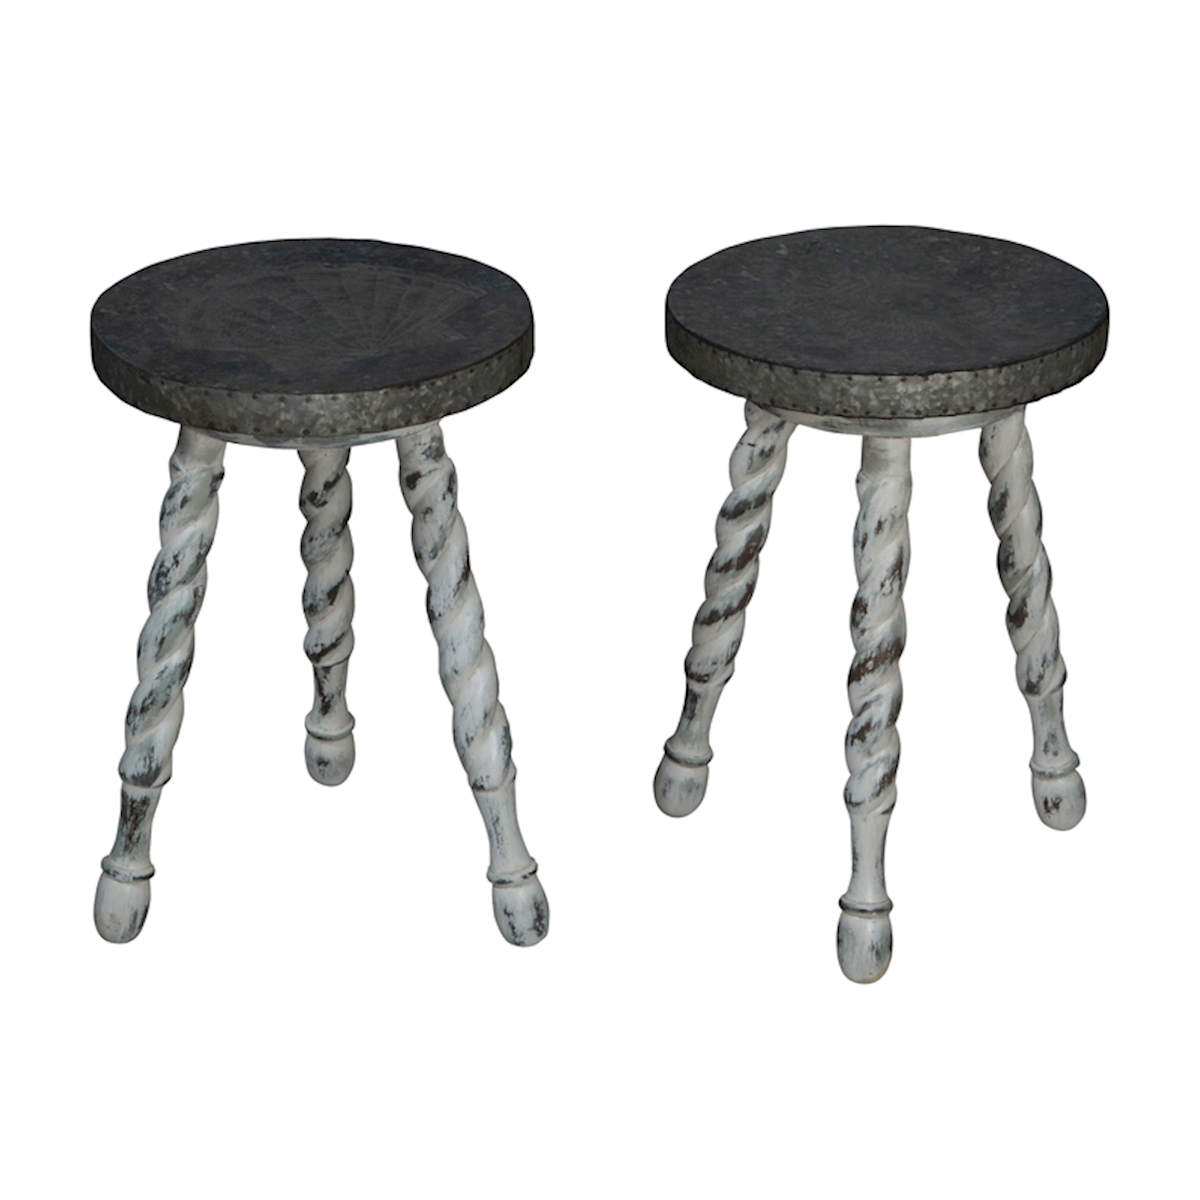 Waterfront Barley Twist Stools 654526S | ELK Home